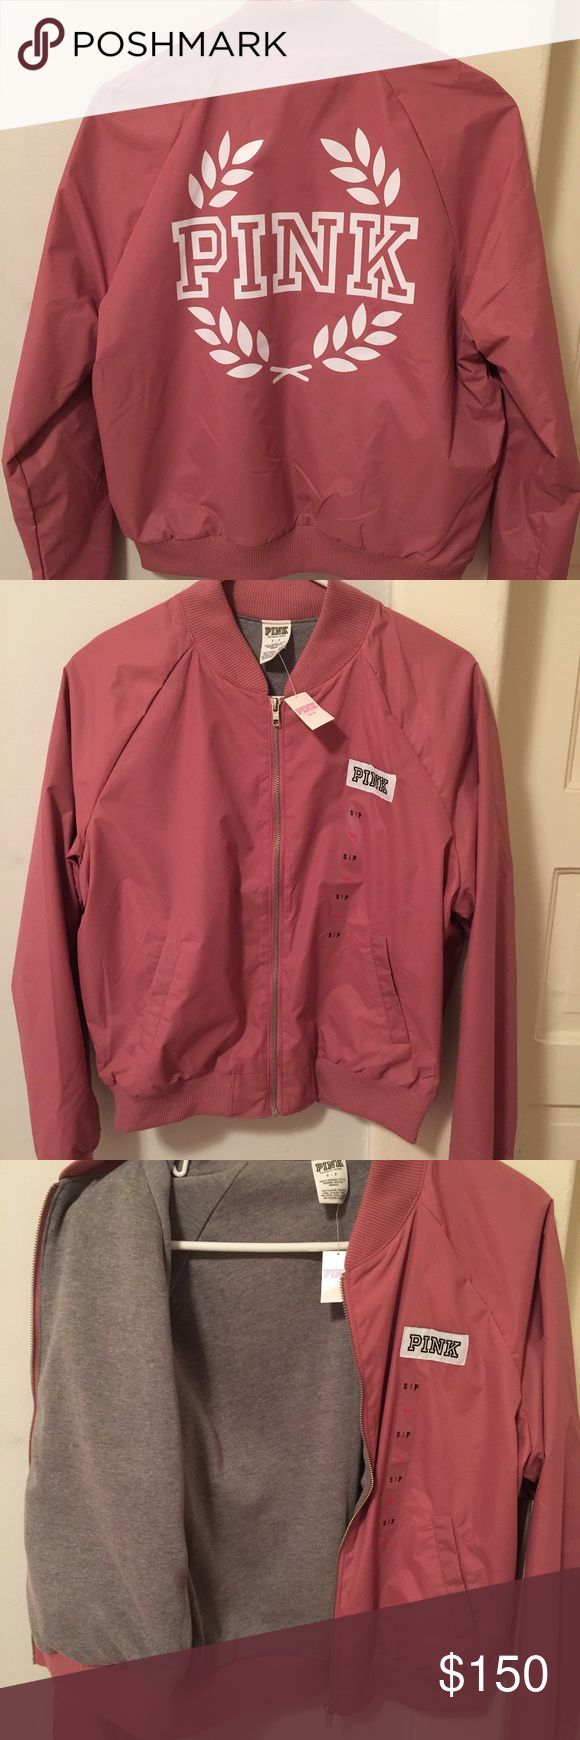 Vs PINK Bomber Jacket Begonia LAST ONE New fall 2016 release -NWT. SOLD OUT ONLINE/IN STORES Size small, last one! Jersey lined on the inside, perfect for fall! Victoria's Secret PINK Victoria's Secret Jackets & Coats